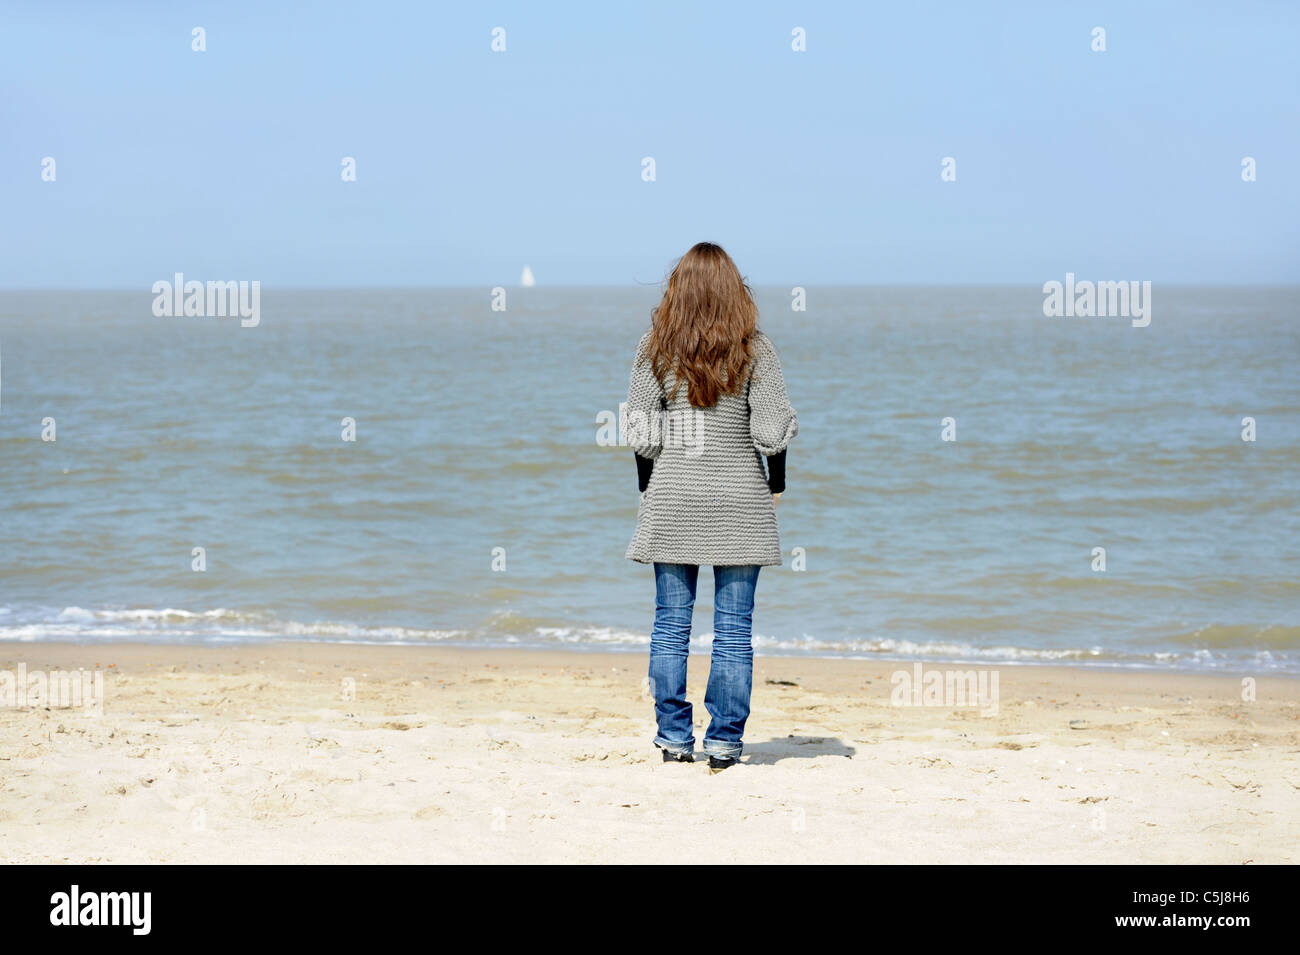 backview of young woman on the beach looking at the ocean - Stock Image